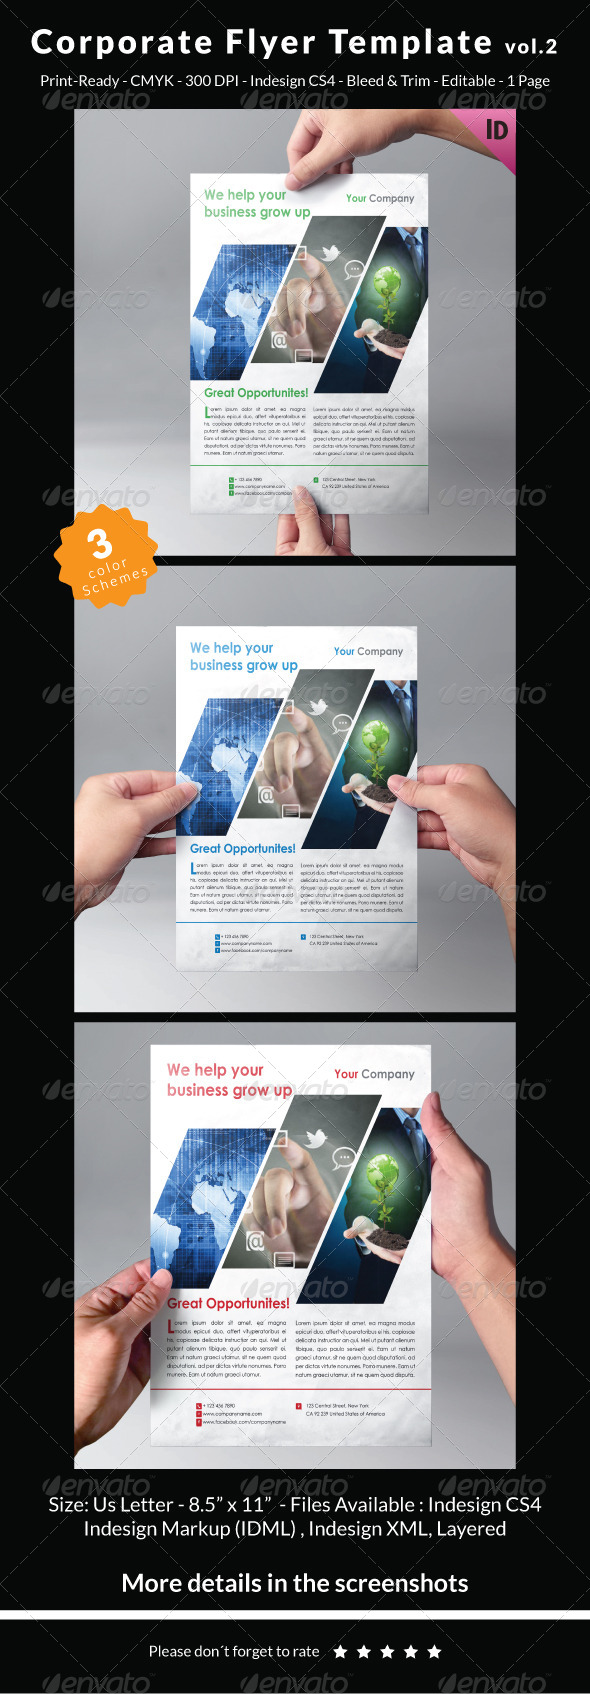 Corporate Flyer Template Vol.2 - Corporate Flyers